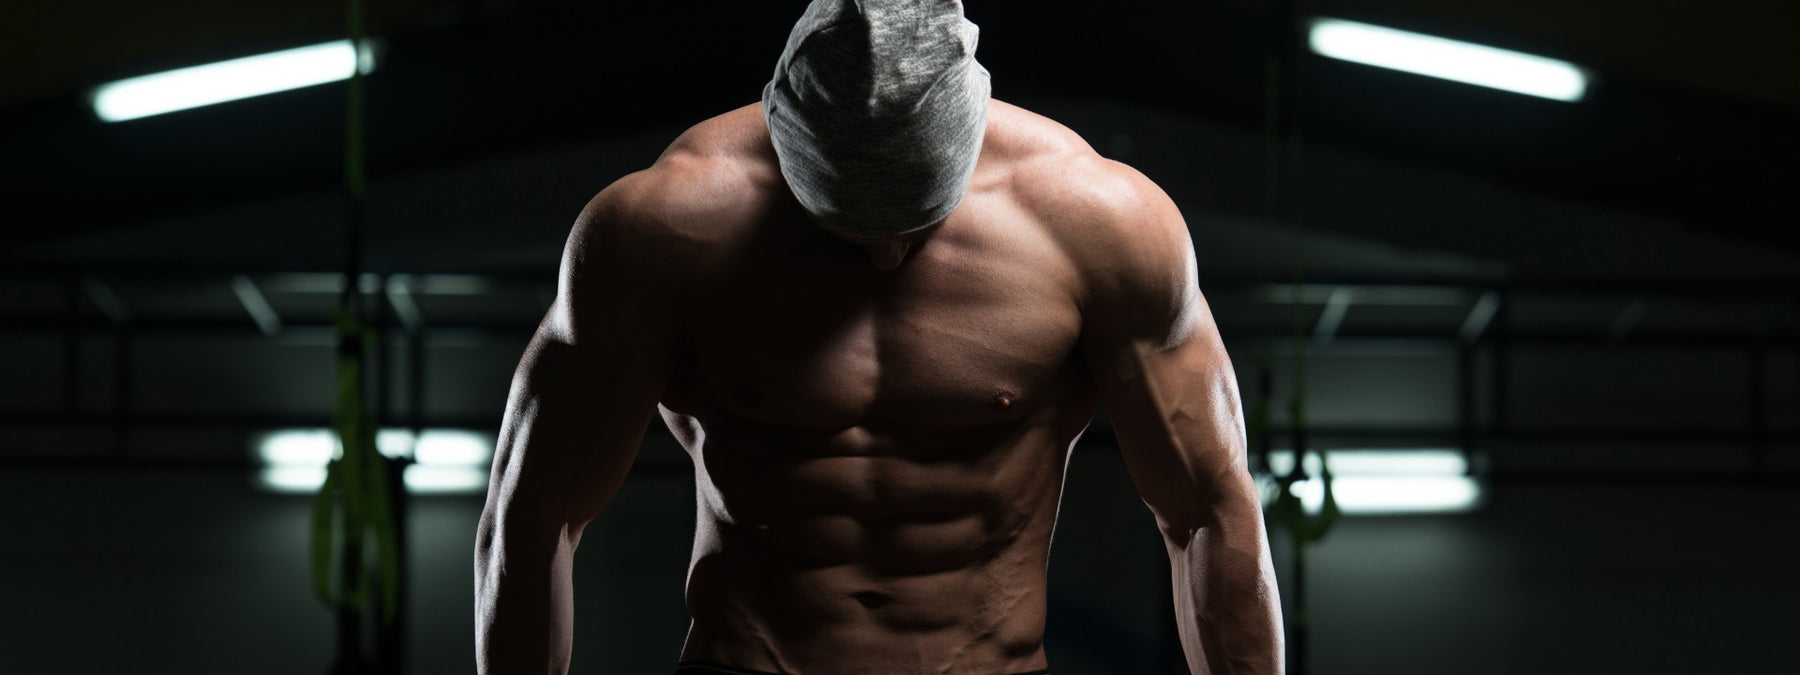 Traps Workout: The Ultimate Specialization Program